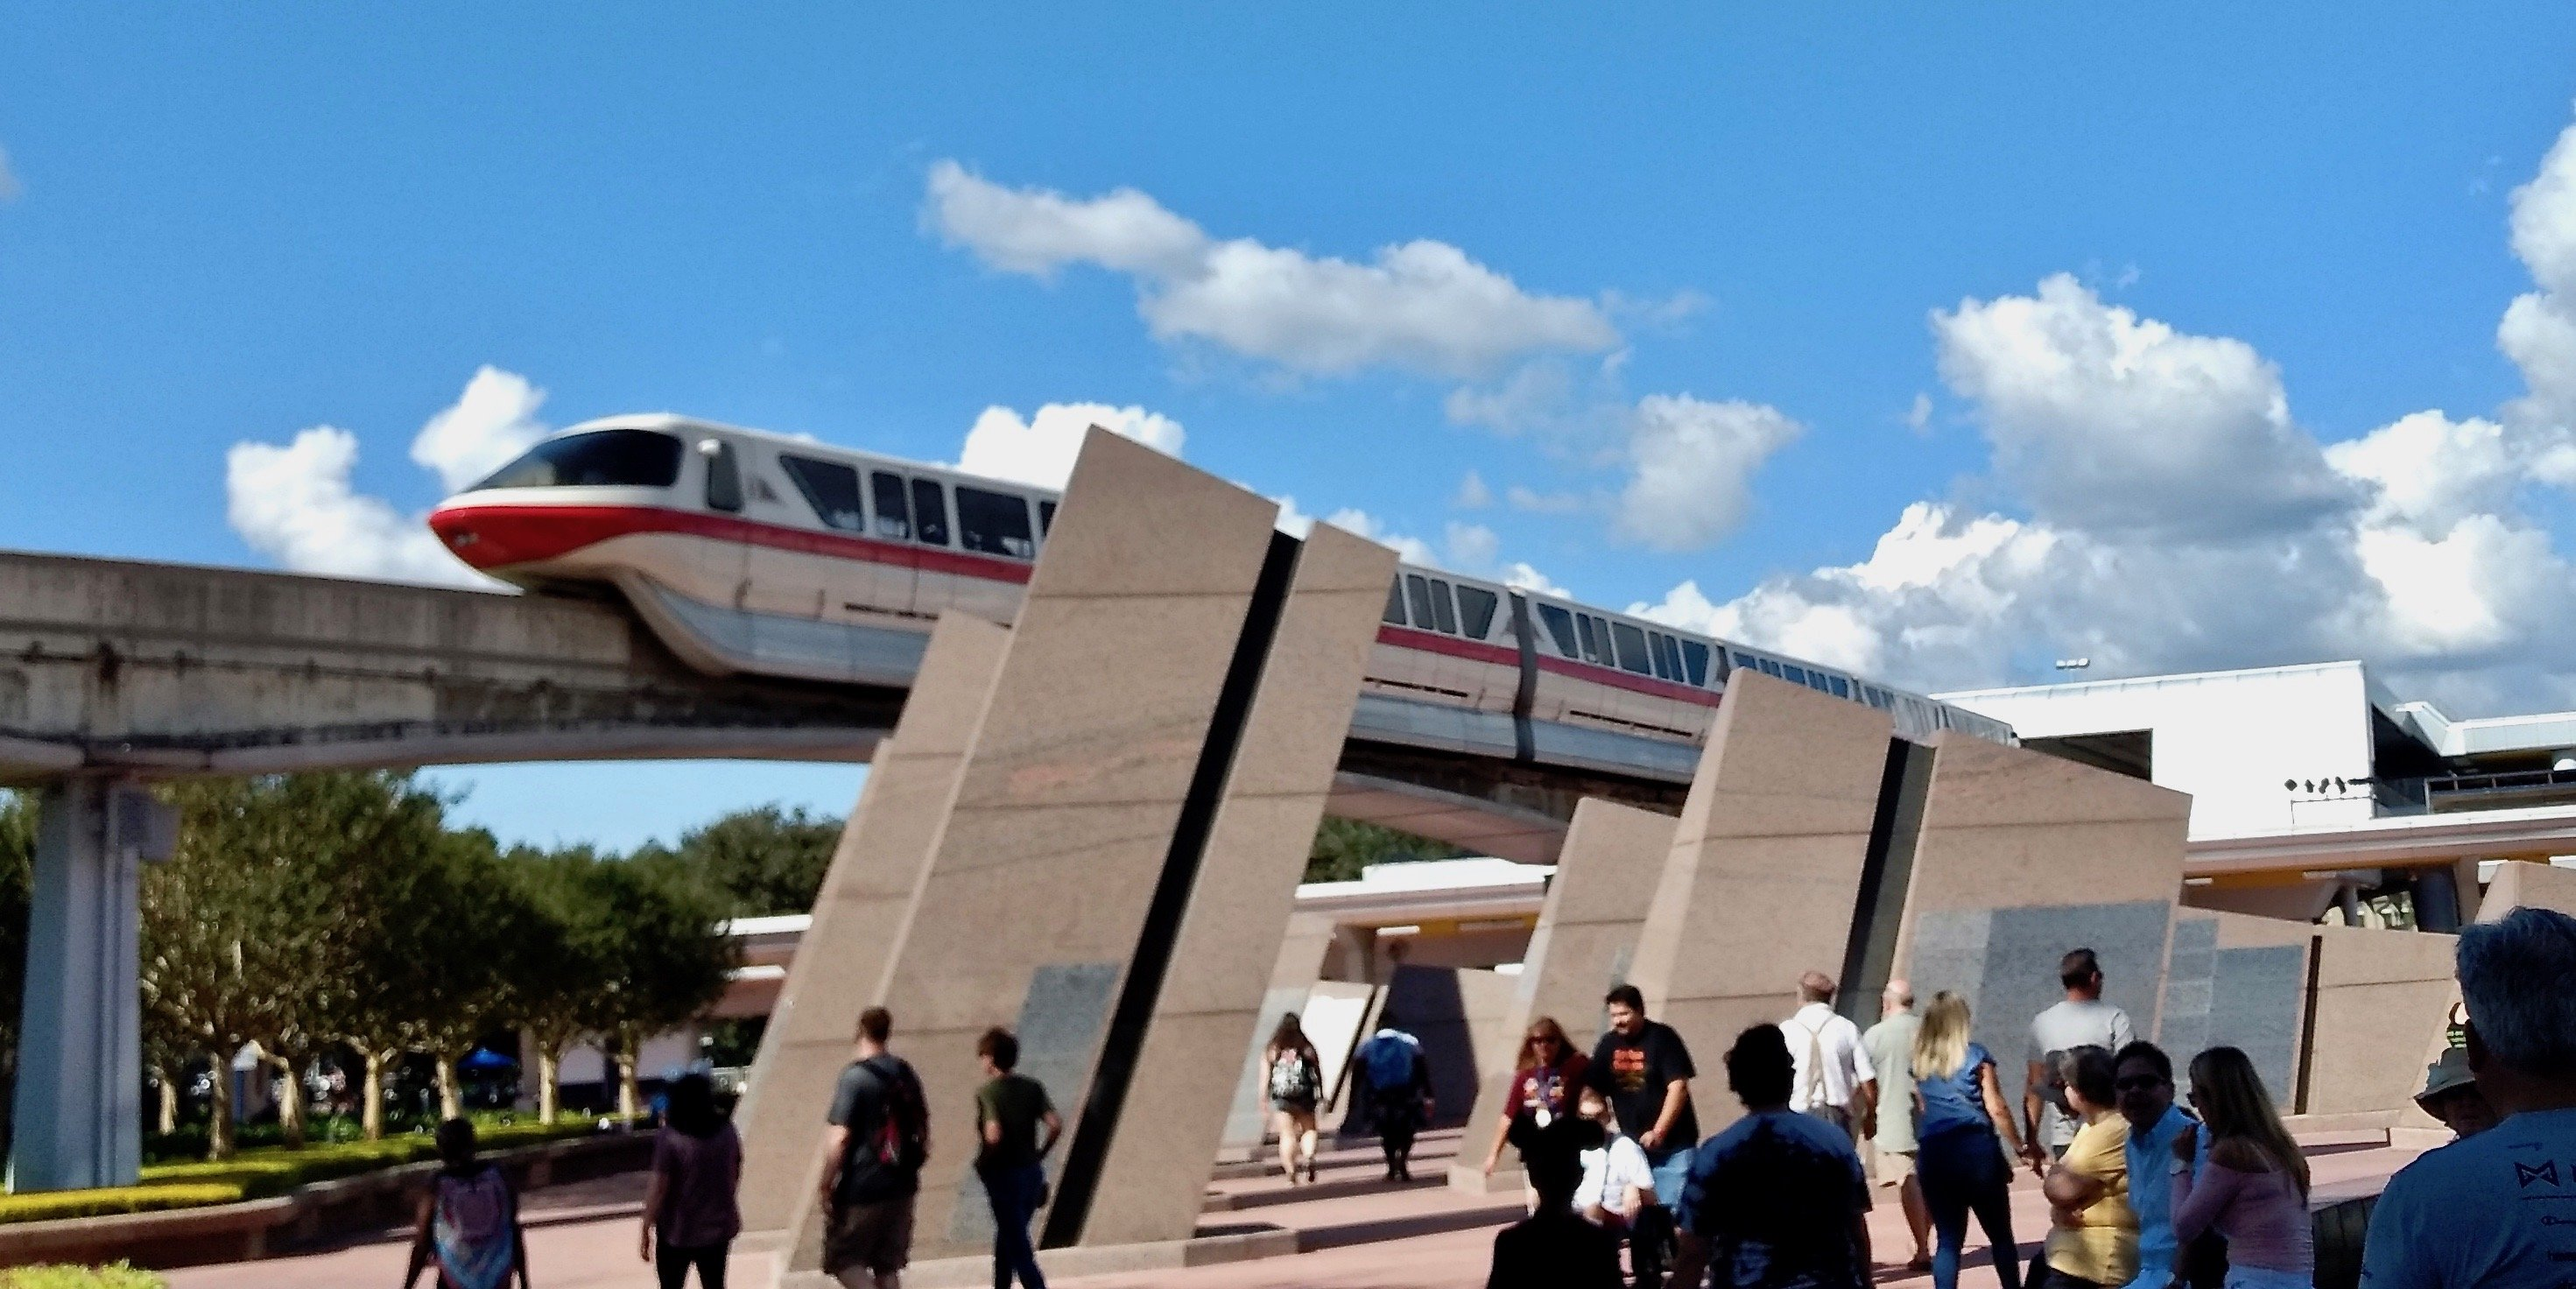 The monorail makes it easy to travel from the Magic Kingdom to Epcot.